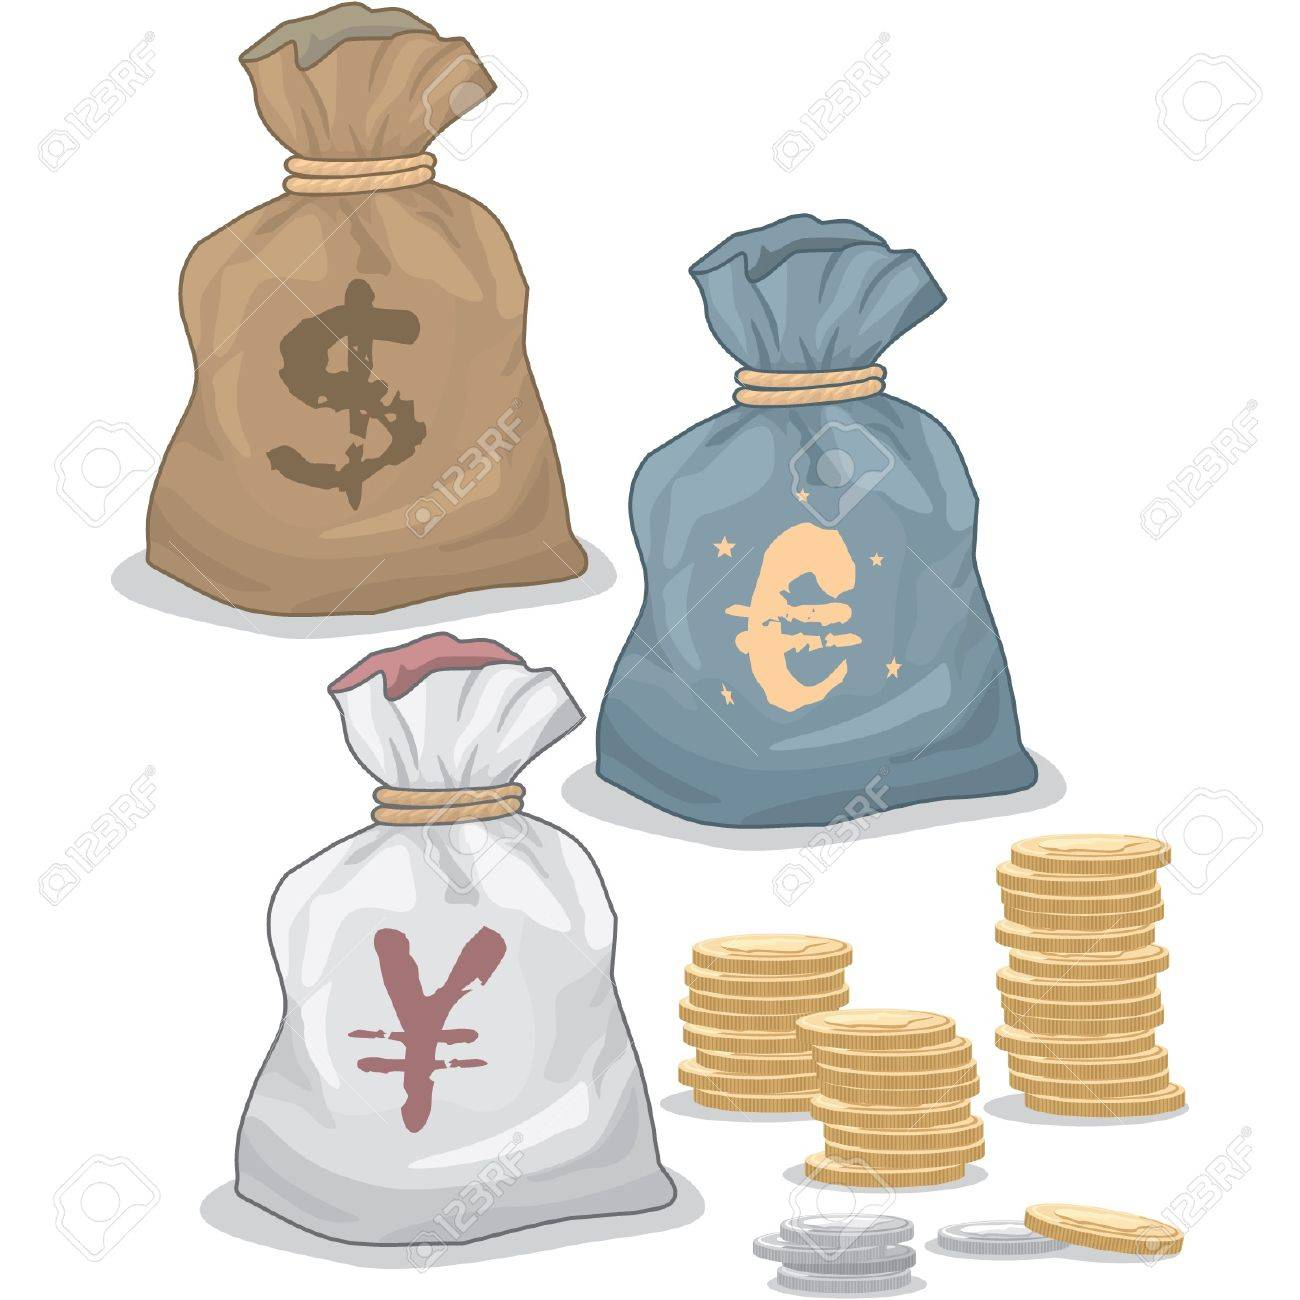 Money Bags with different Currency Stock Vector - 11113887